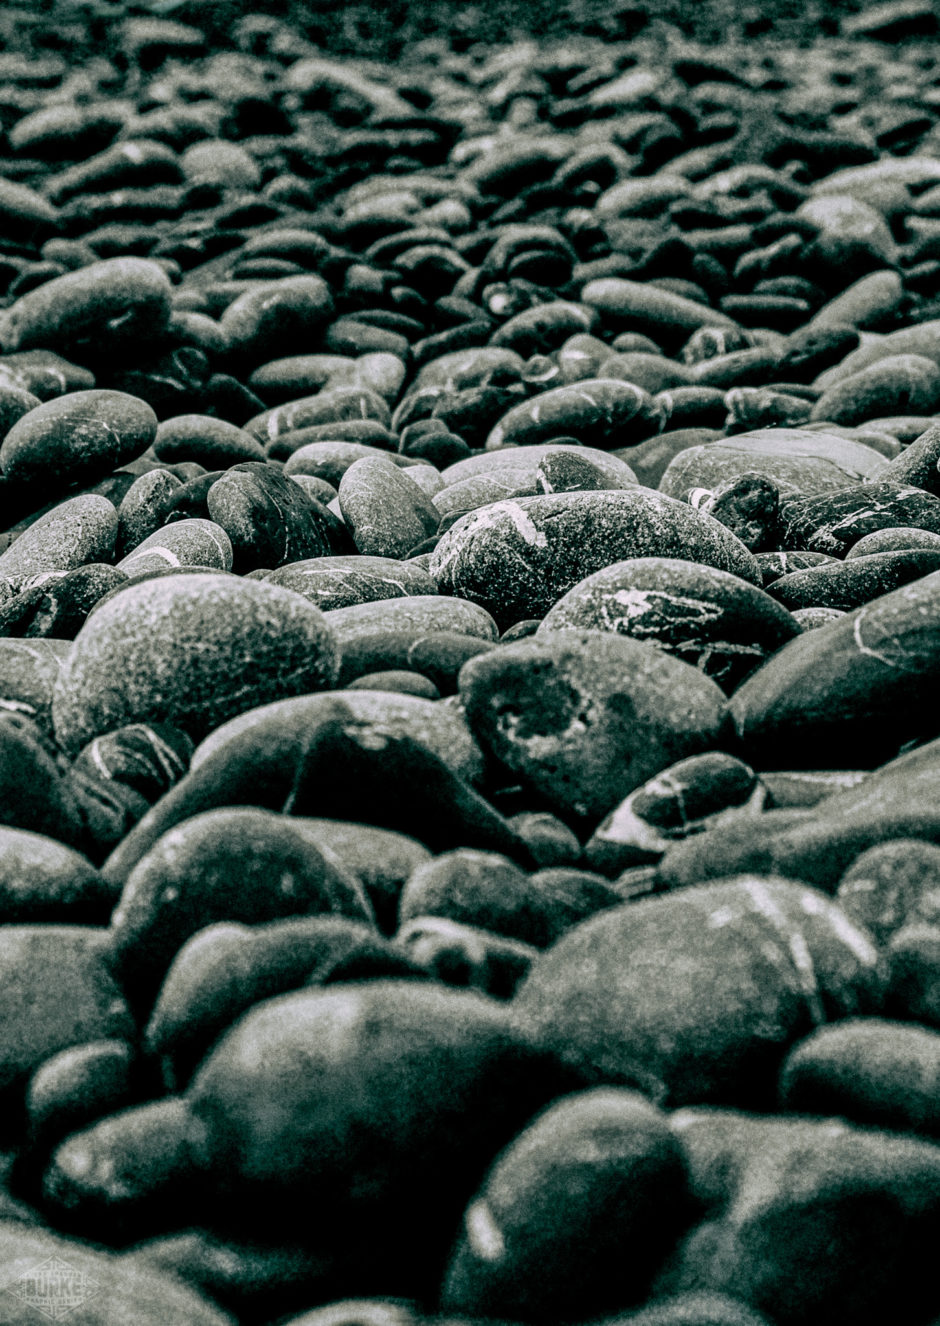 The 'sand' of Black Sands Beach in Shelter Cove, California is made up of these rounded rocks striated with quartz.